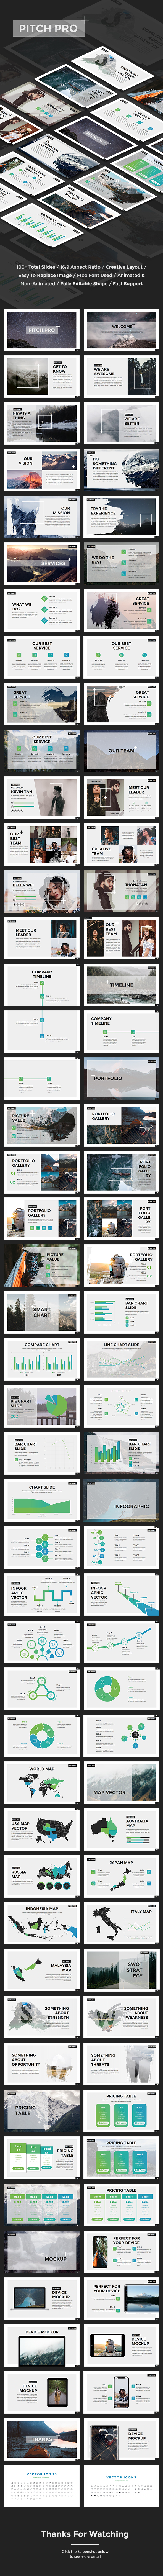 Pitch Pro - Start Up Pitch Deck PowerPoint Template - Pitch Deck PowerPoint Templates